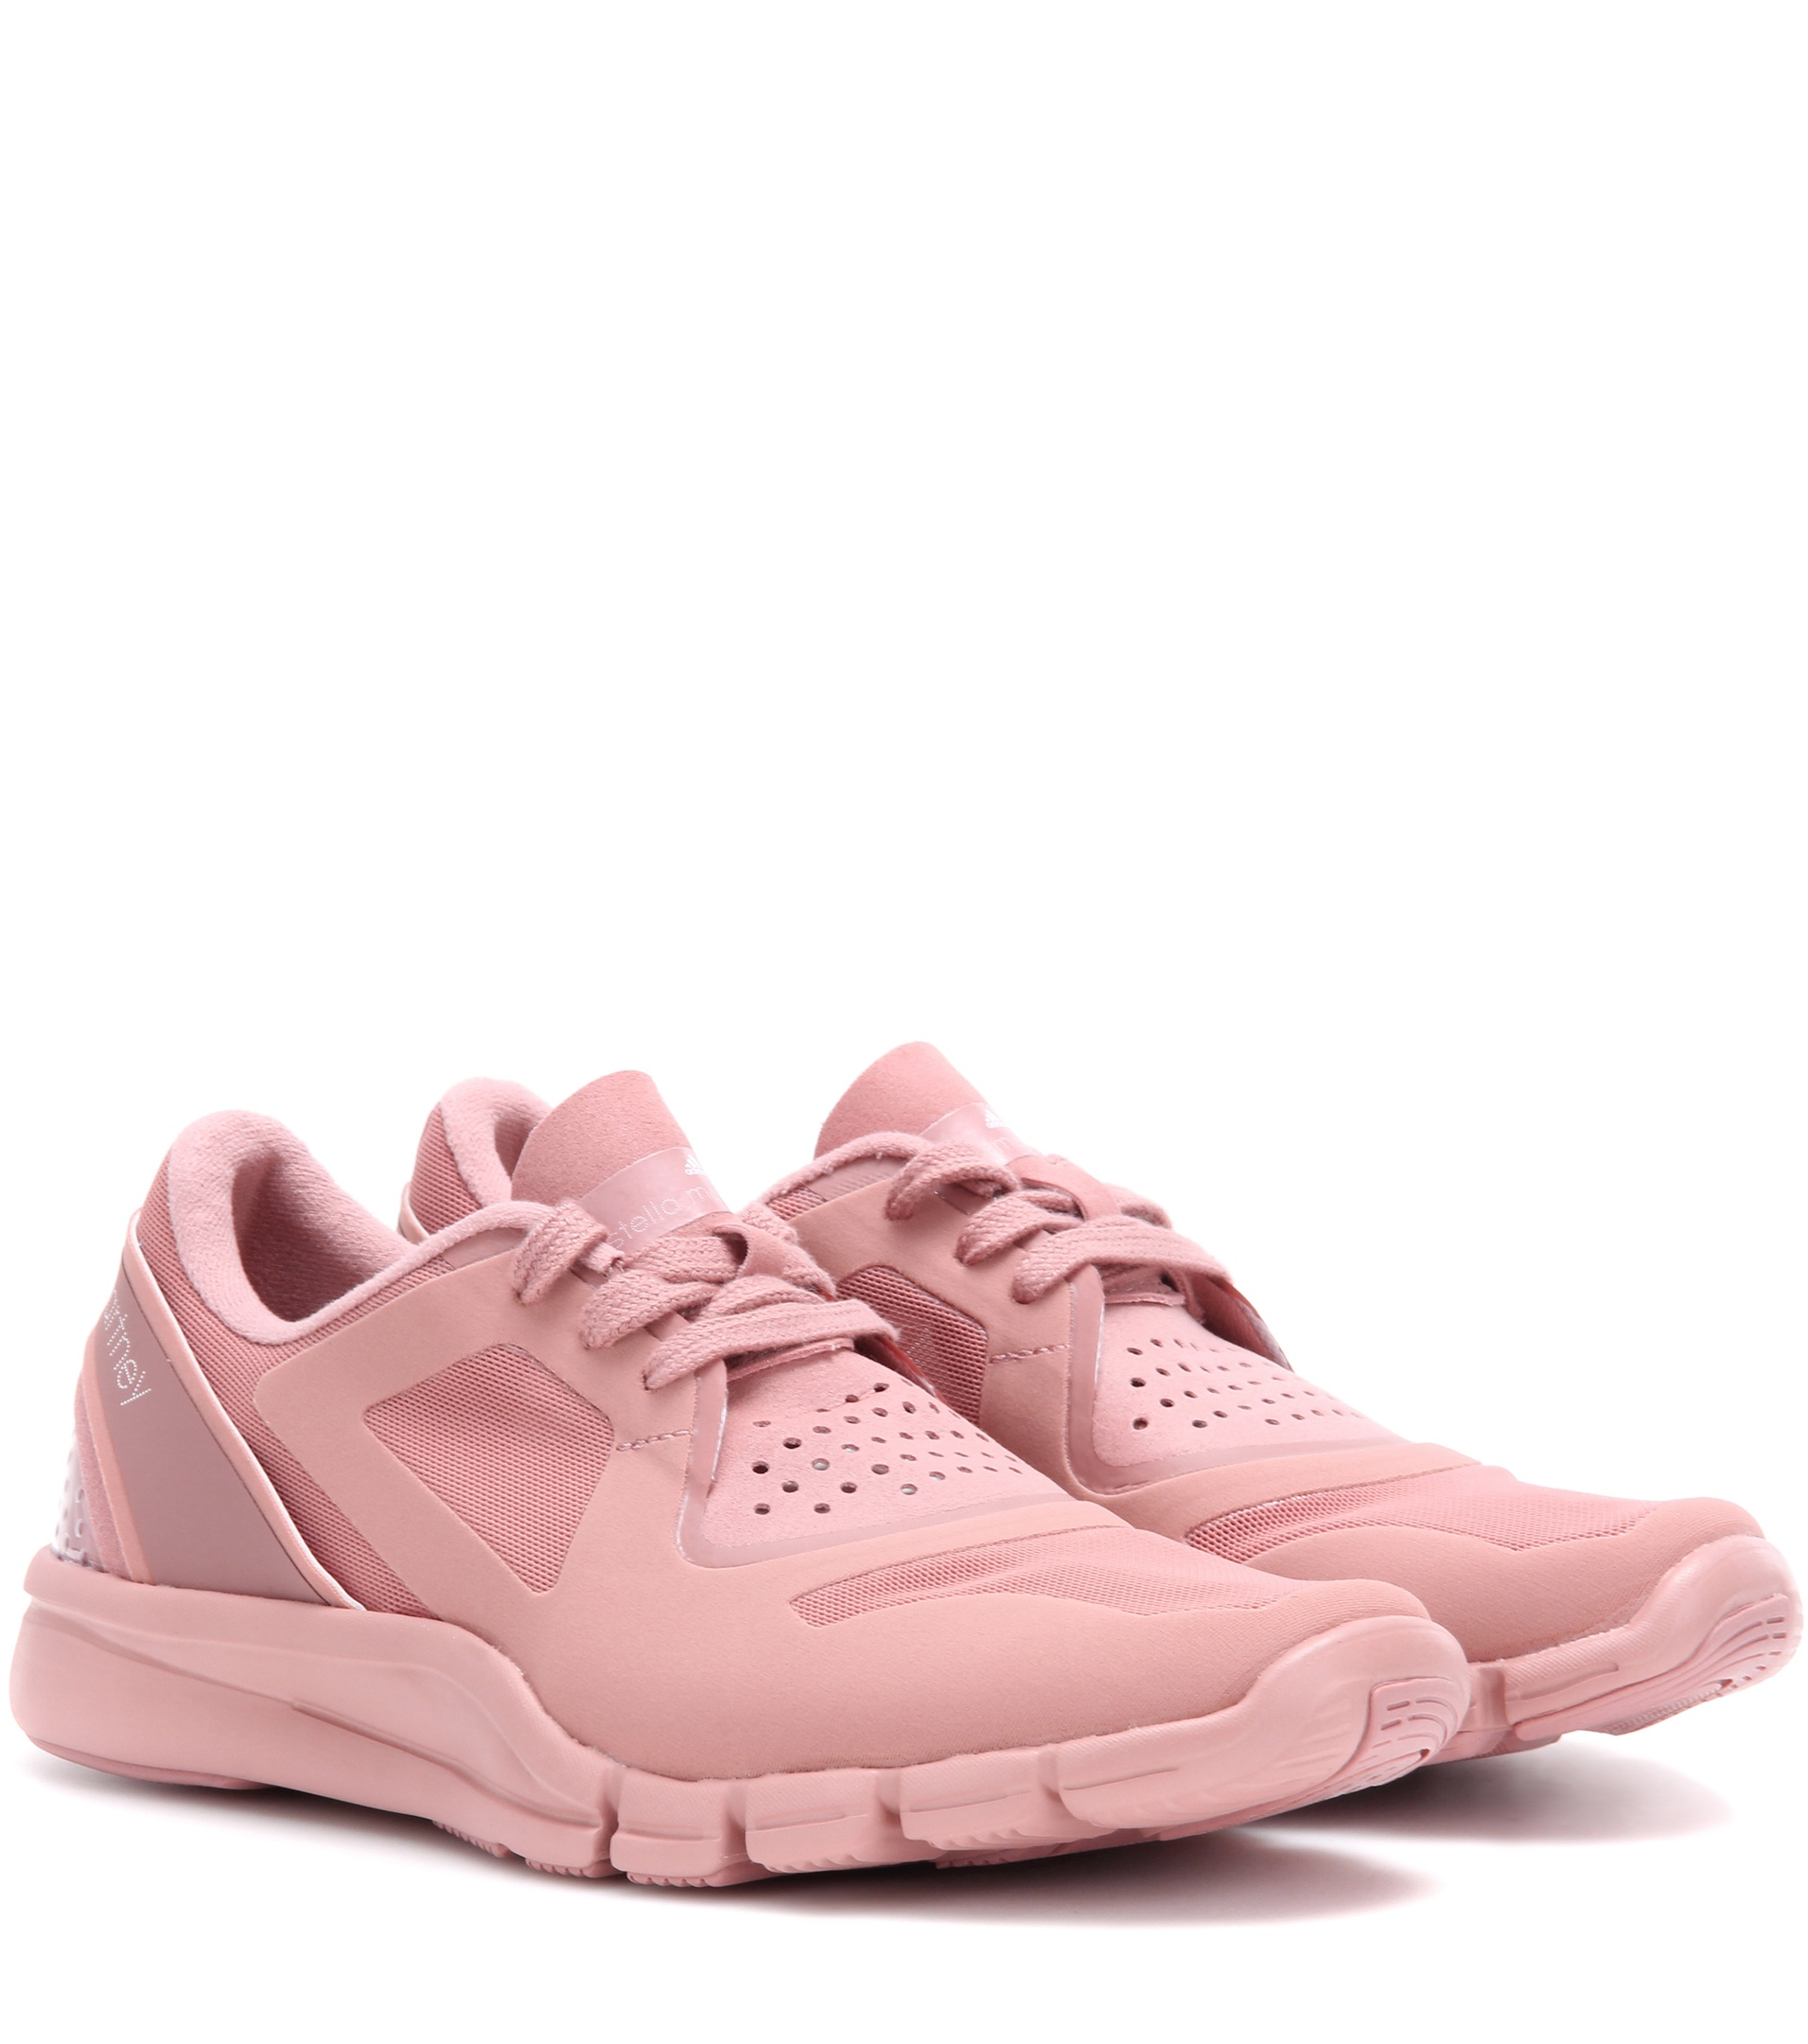 purchase cheap dd5e7 6871d adidas By Stella McCartney Altaya Sneakers in Pink - Lyst